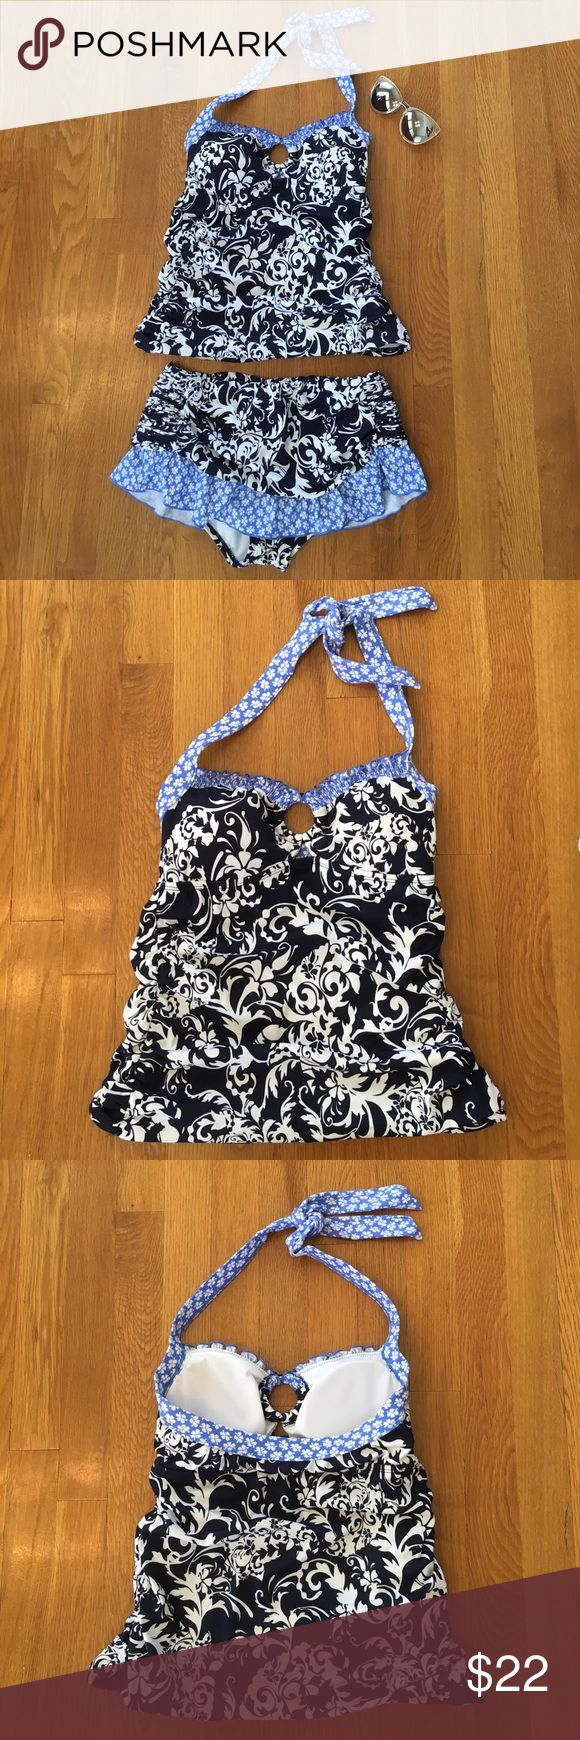 24th and Ocean Tankini S EXCELLENT condition! Worn one time! Navy and white filigree with light blue ruffle trim with flowers. Removable pads in top. 24th & Ocean Swim